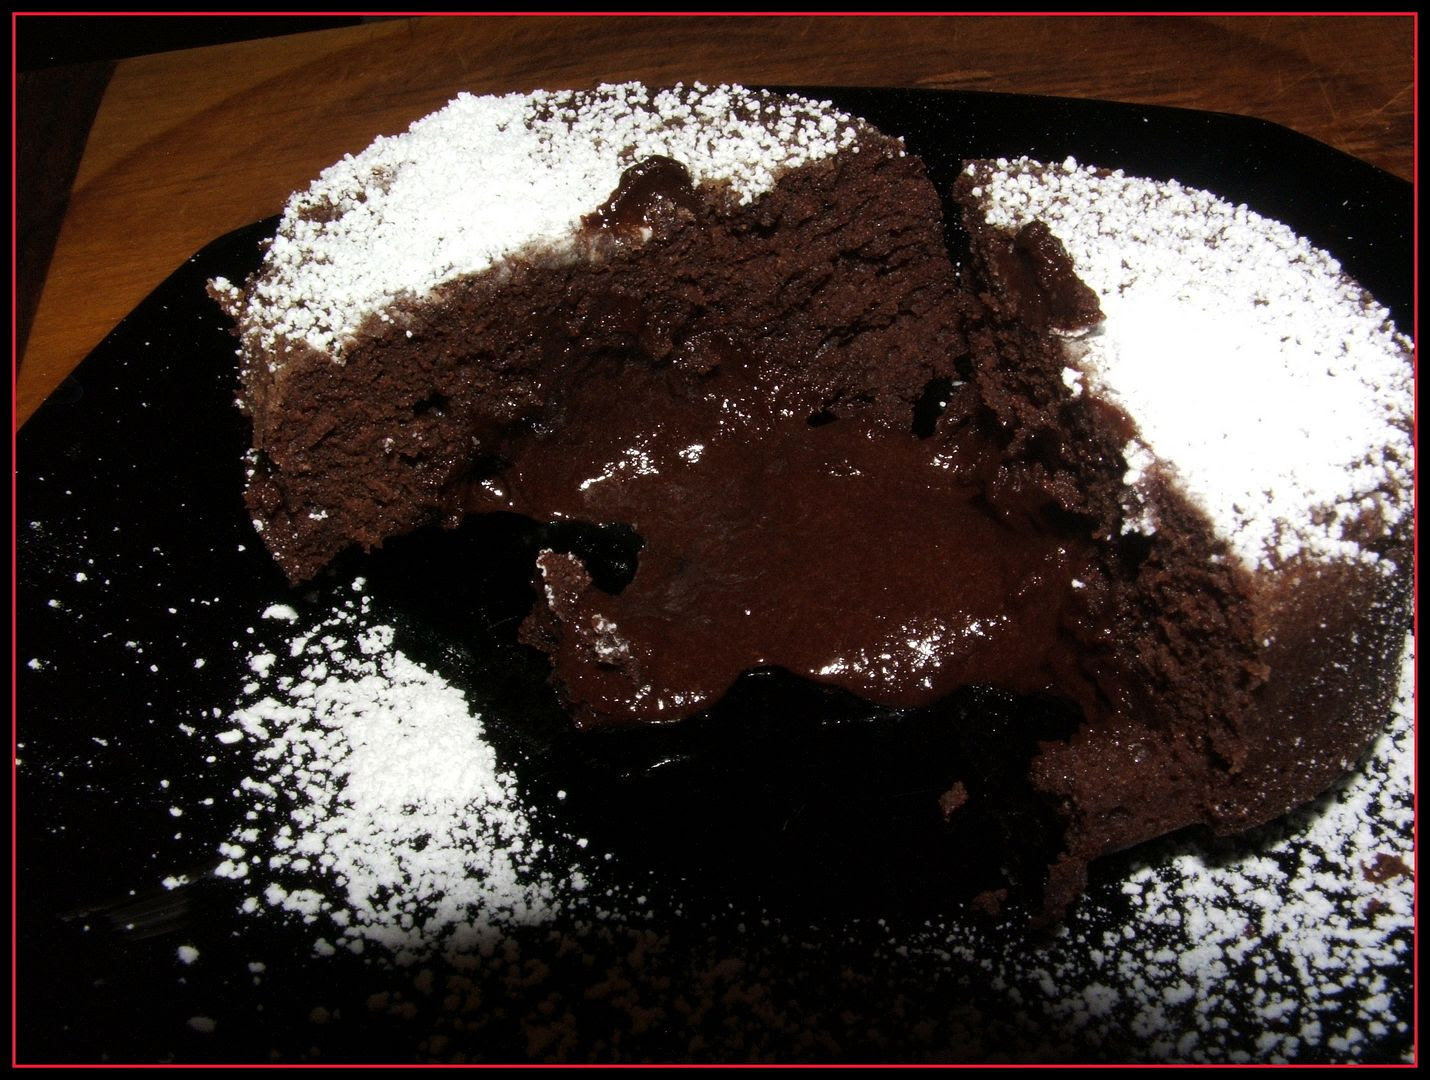 Cocoa Lava Cake by Angie Ouellette-Tower for godsgrowinggarden.com photo 004_zpsa74a43af.jpg